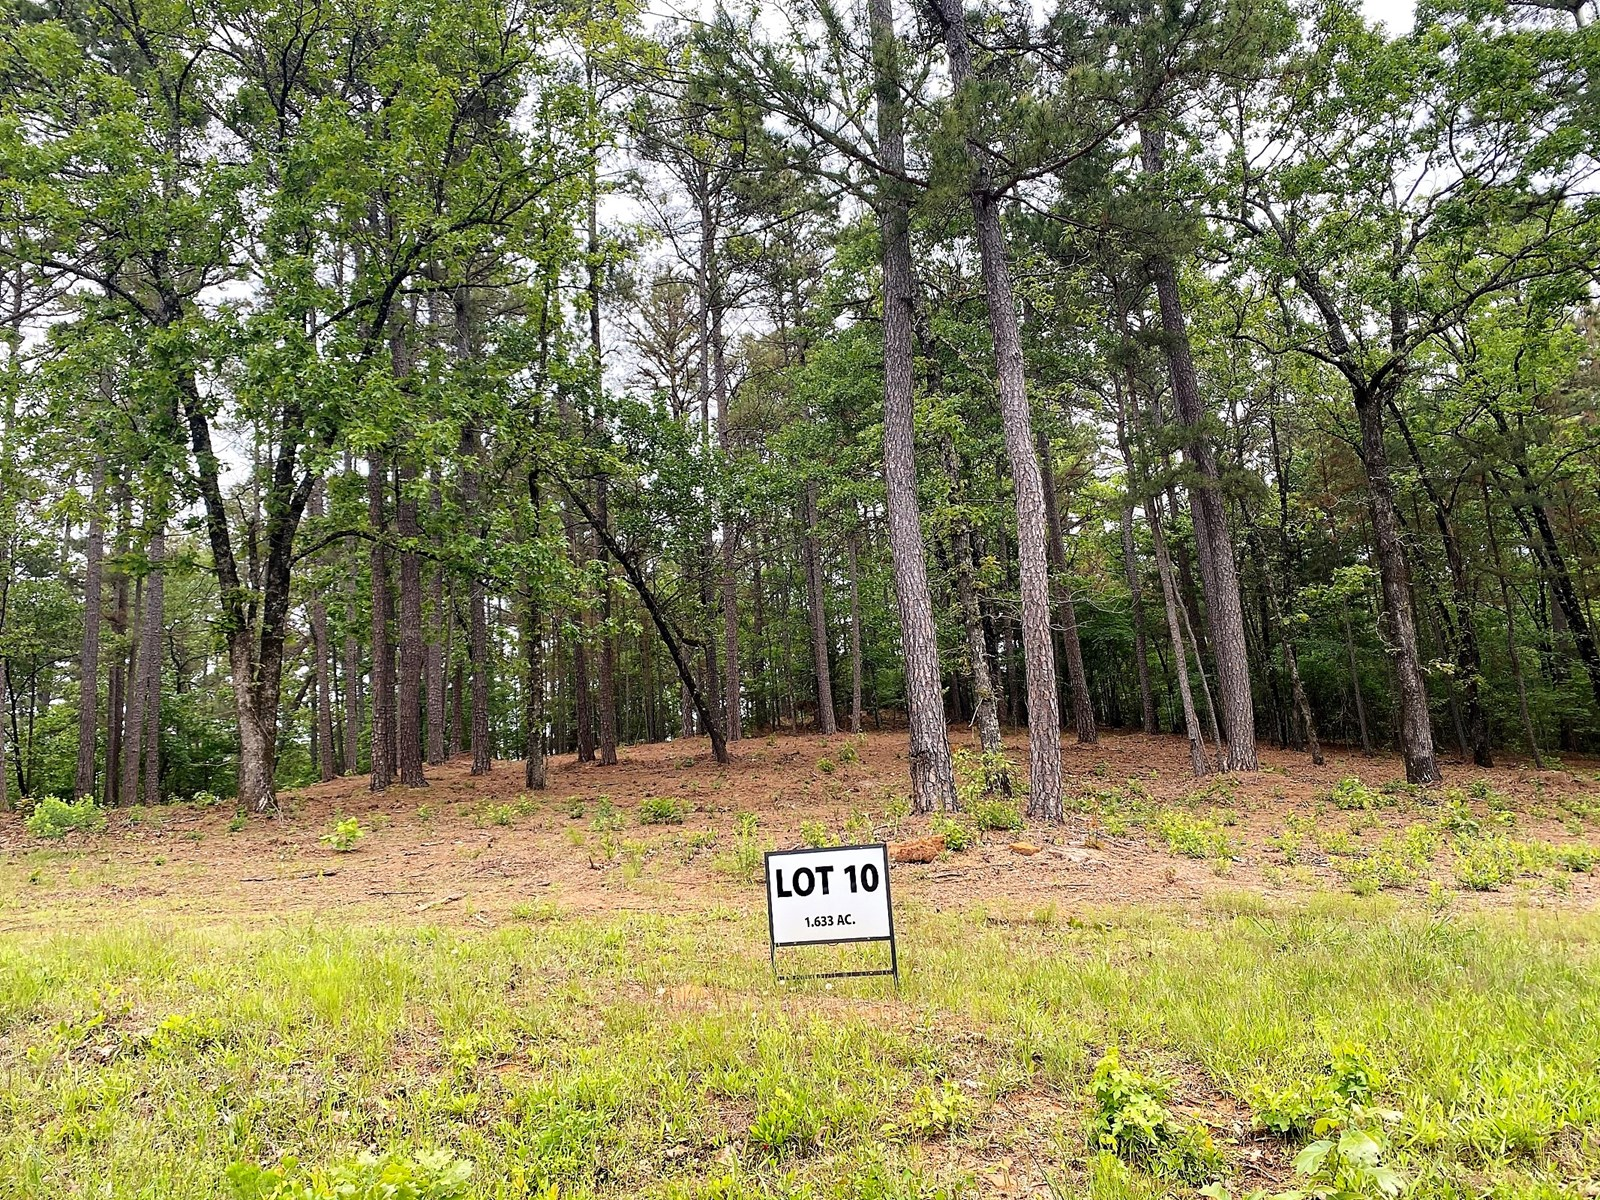 Lot 10 Residential Land for Sale Lindale TX Near Hideaway